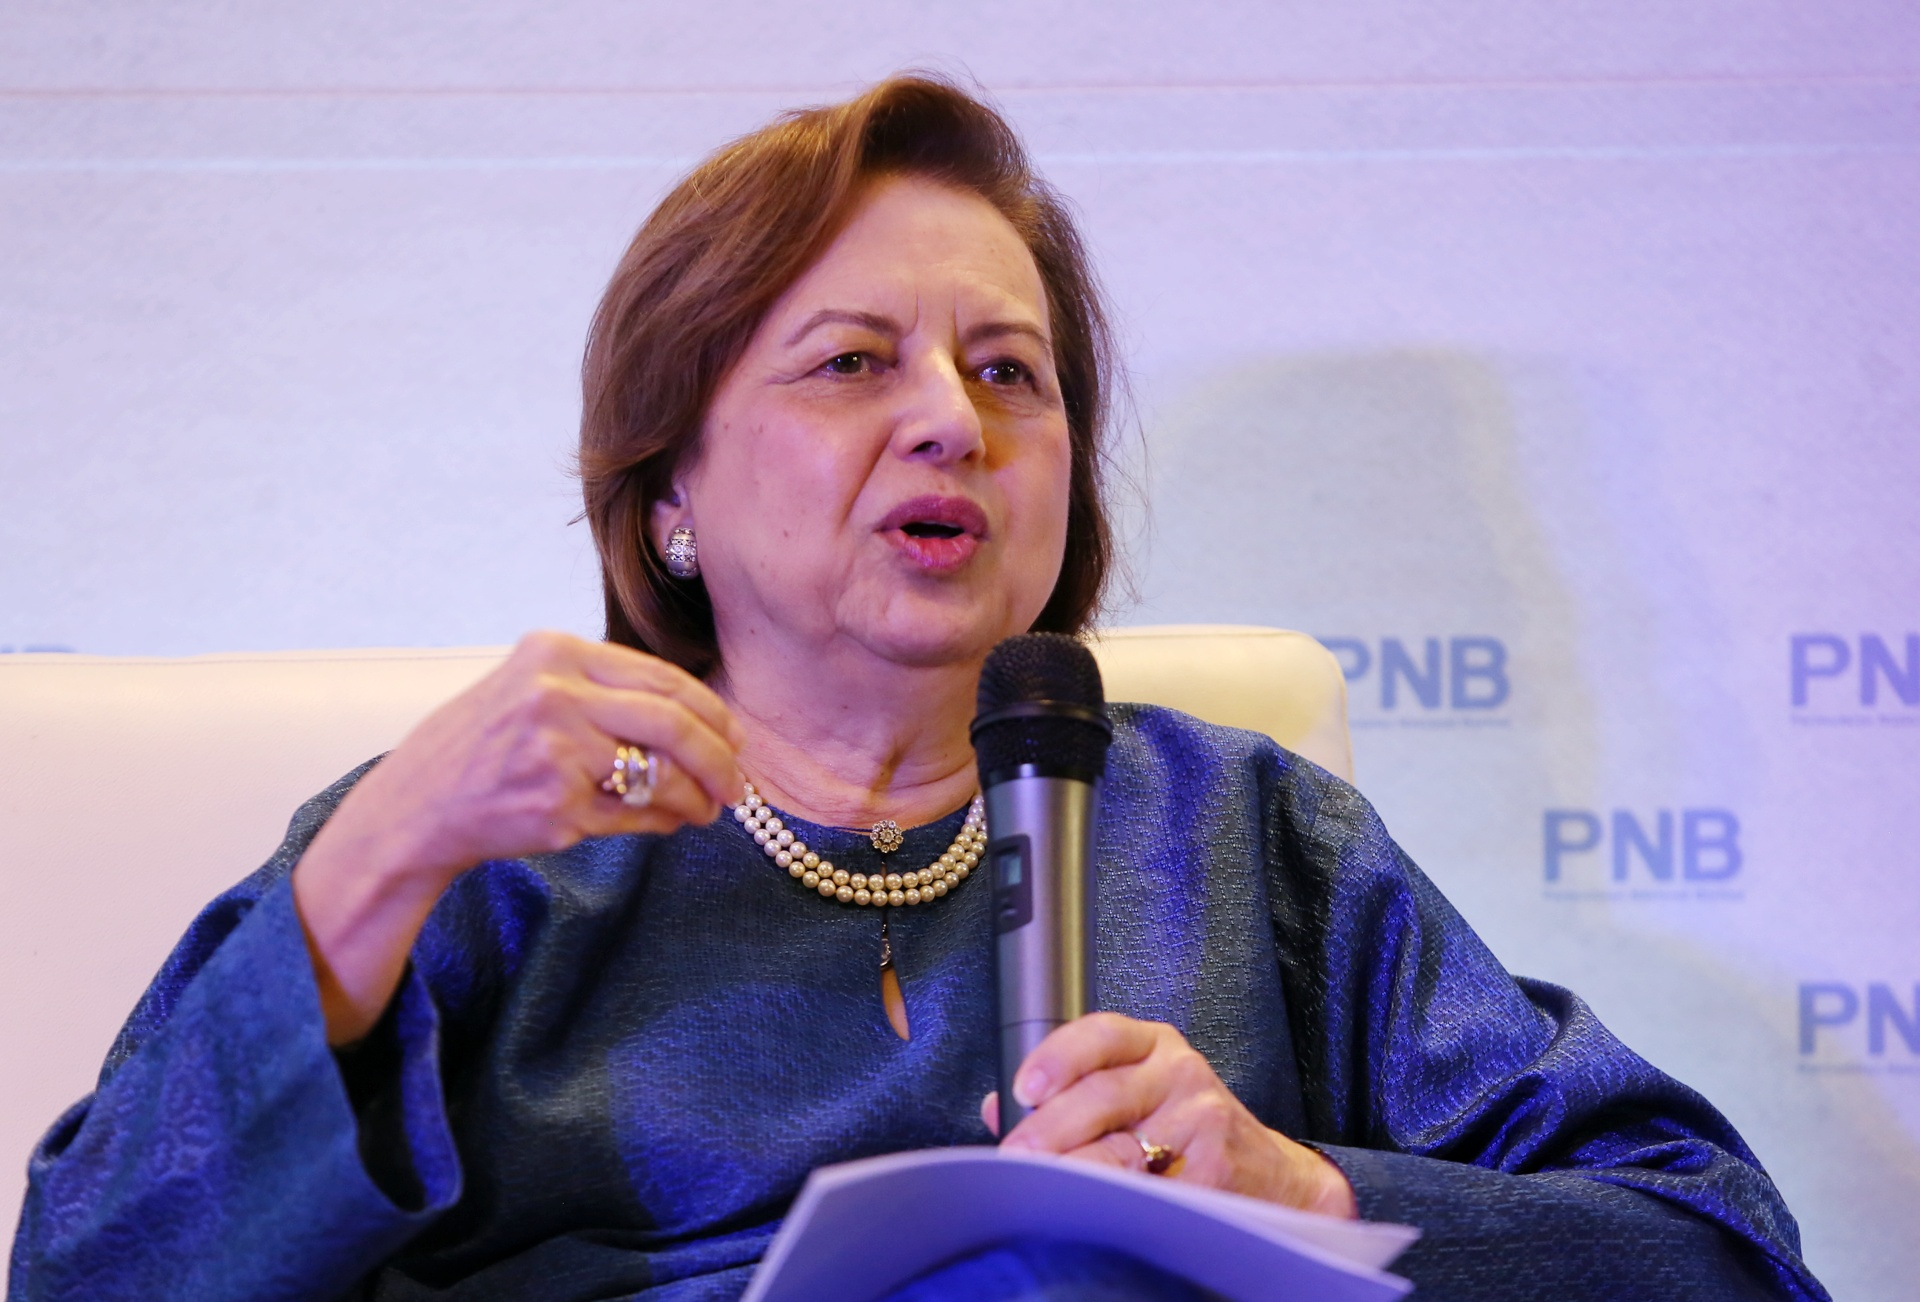 PNB Group Chairman, Tan Sri Dr Zeti Aziz speaks to the media at Menara PNB, December 21, 2018. — Picture by Choo Choy May